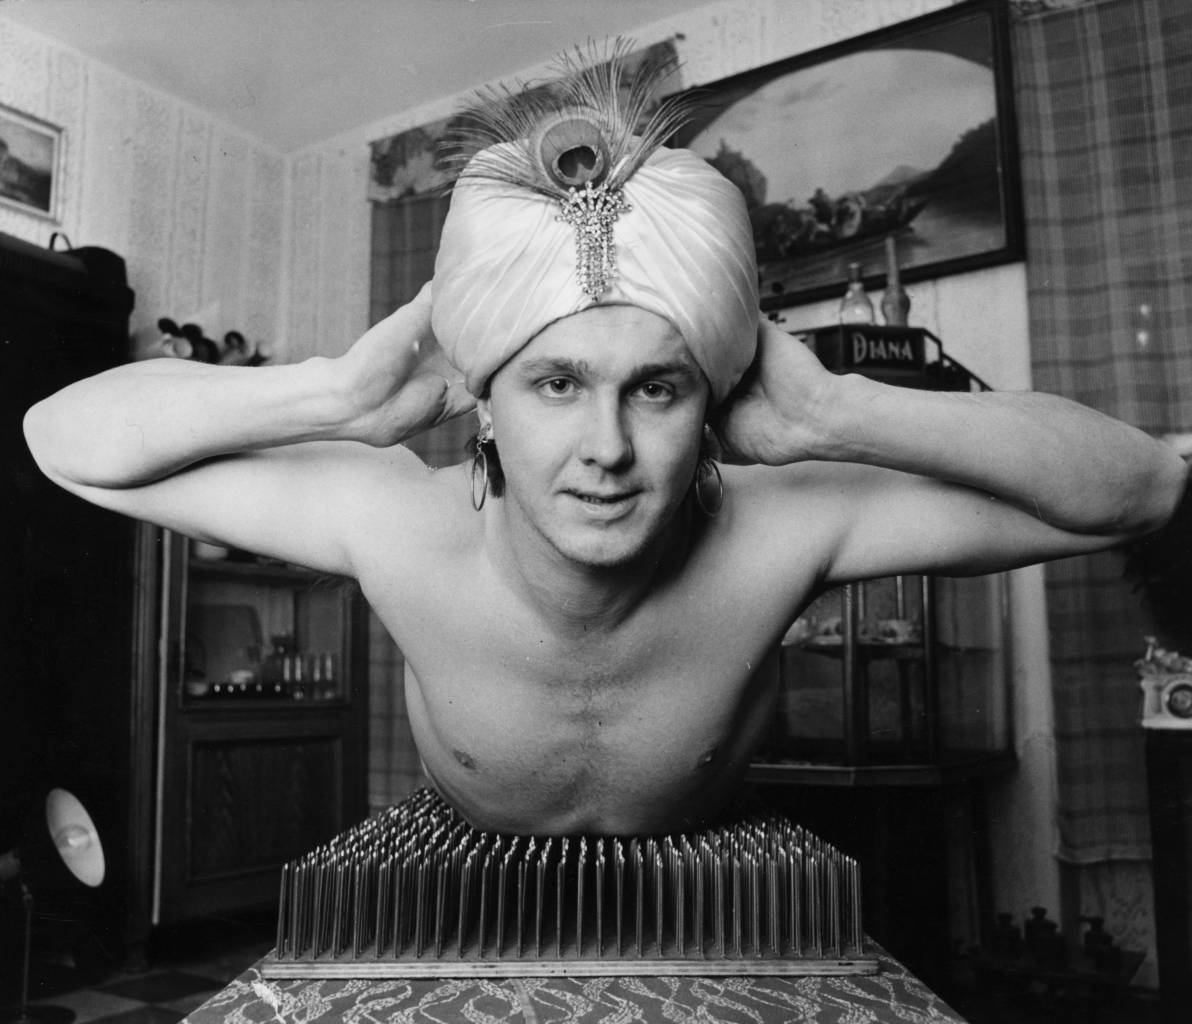 February 1981: Czech stuntman Z Zahradka performs his bed of nails act. (Photo by Keystone Features/Getty Images)